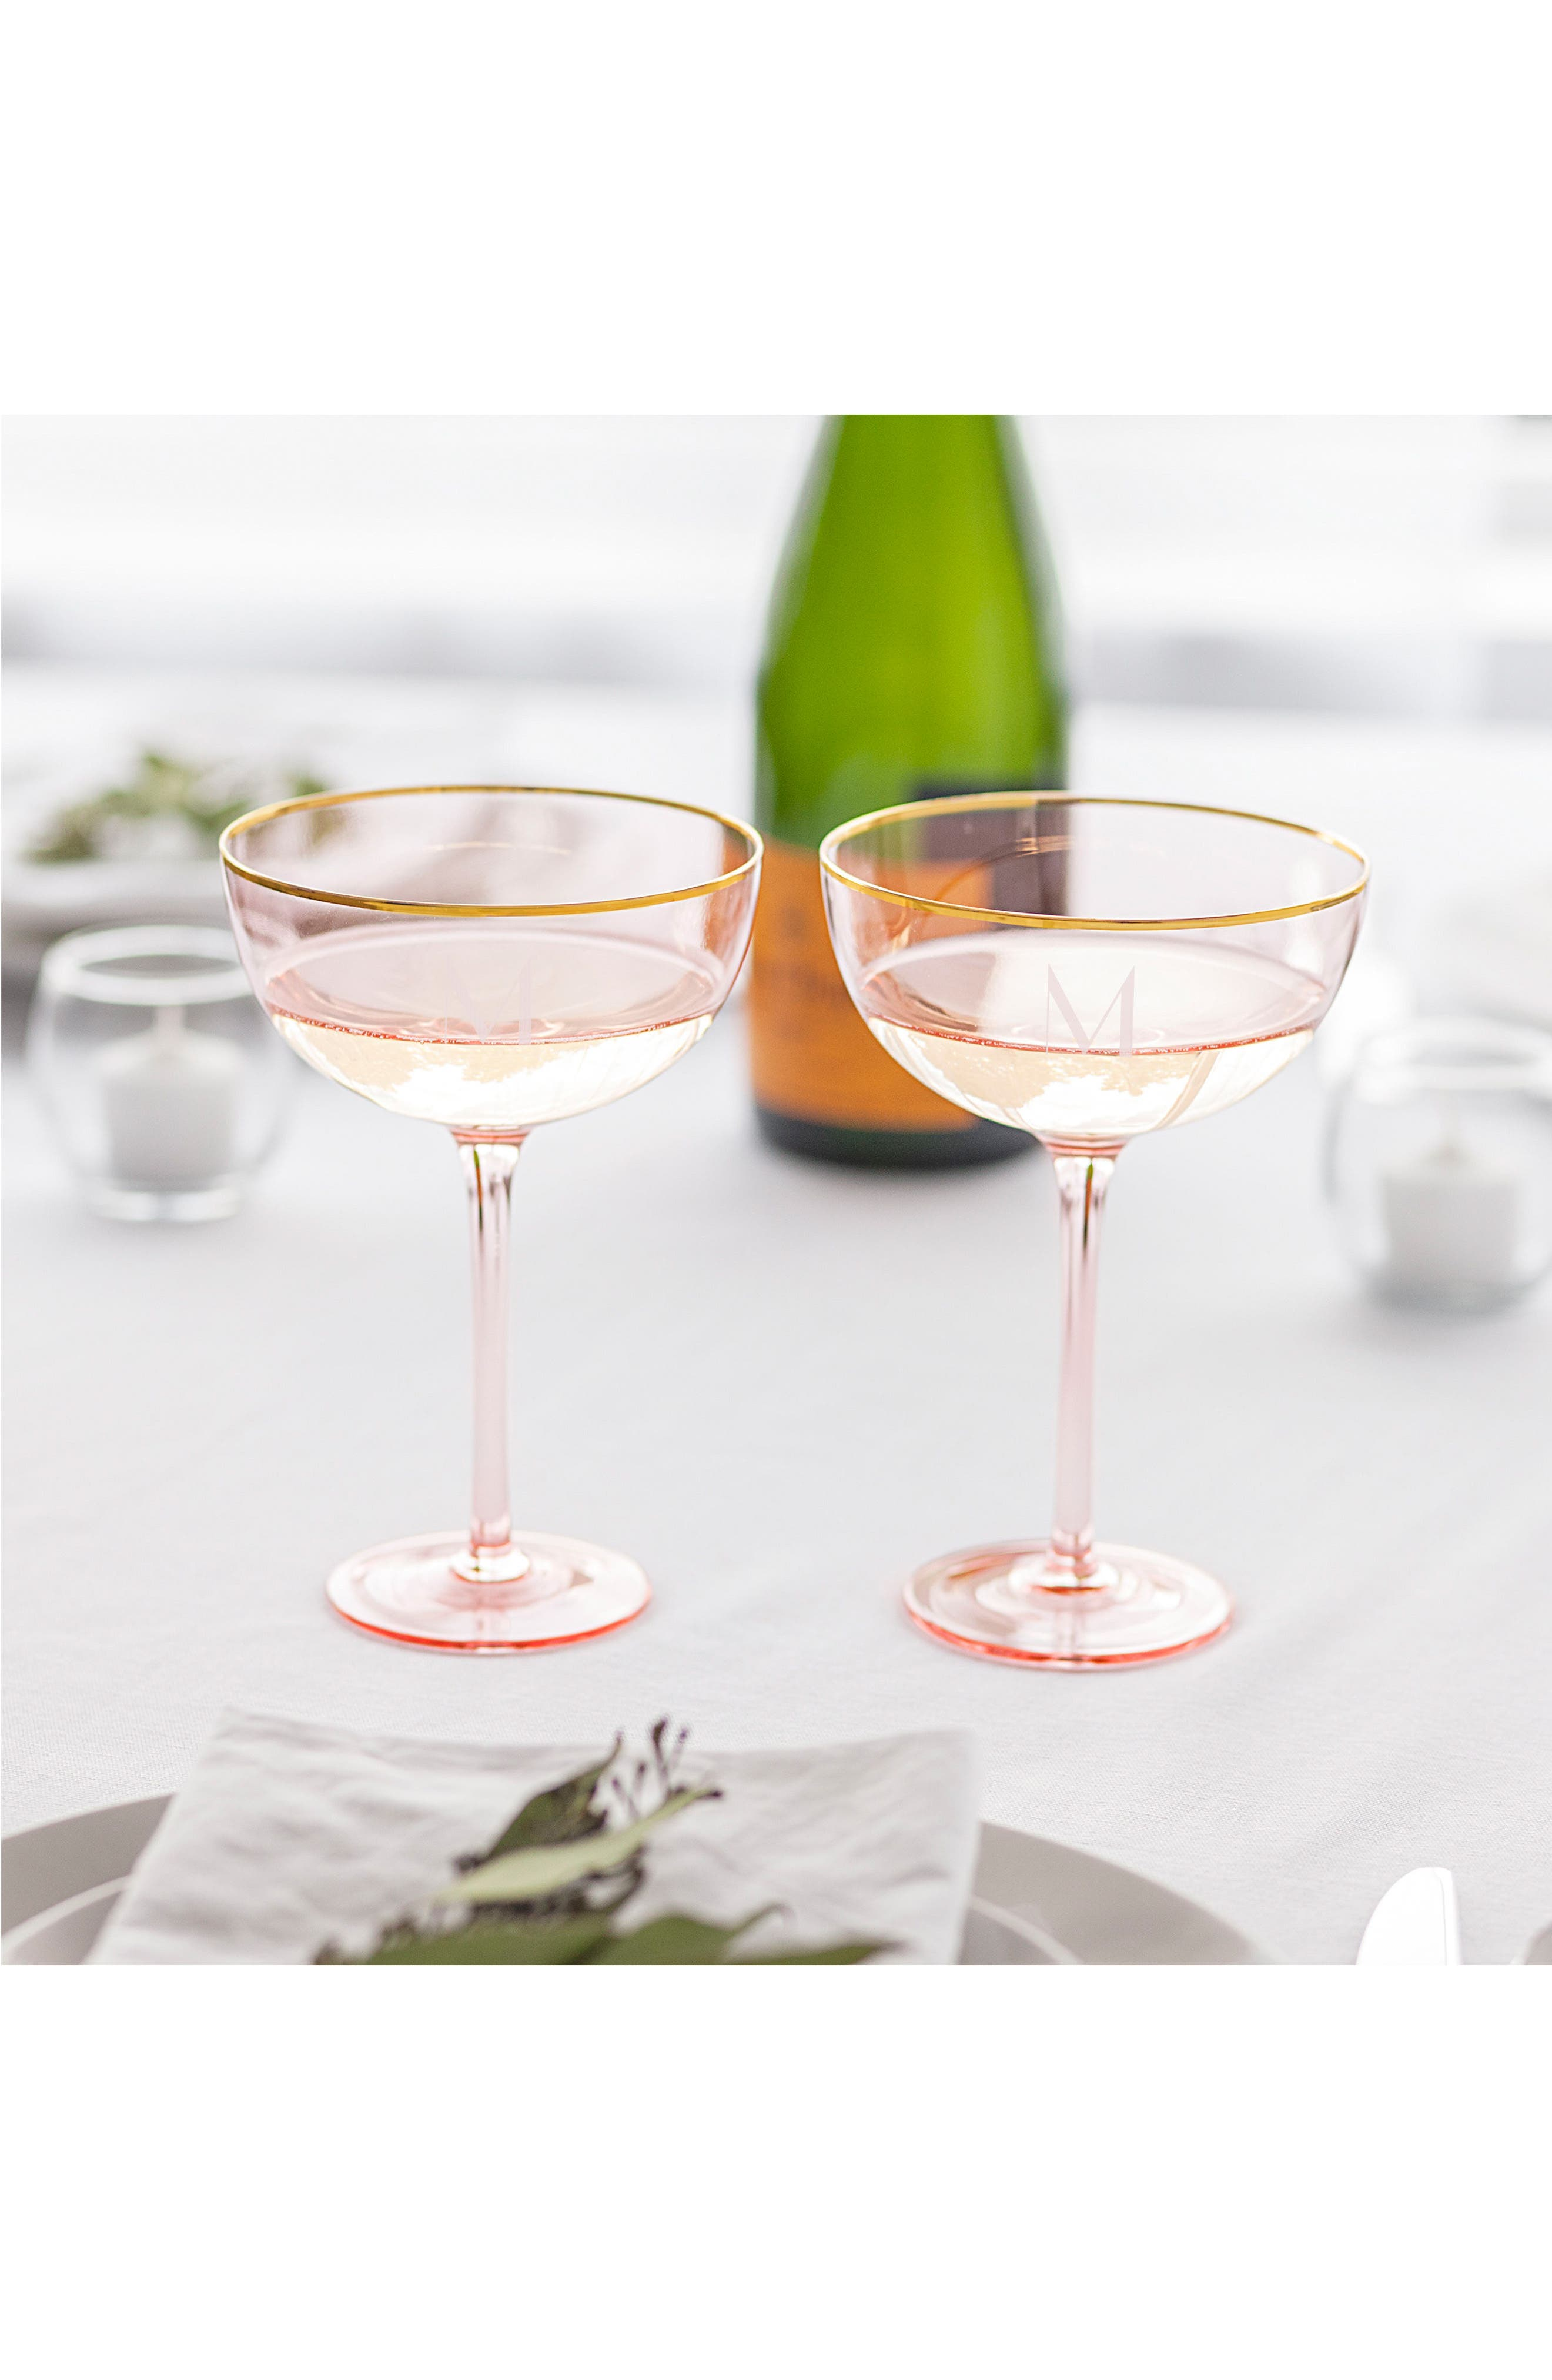 Monogram Set of 2 Champagne Coupes,                             Alternate thumbnail 12, color,                             Blush